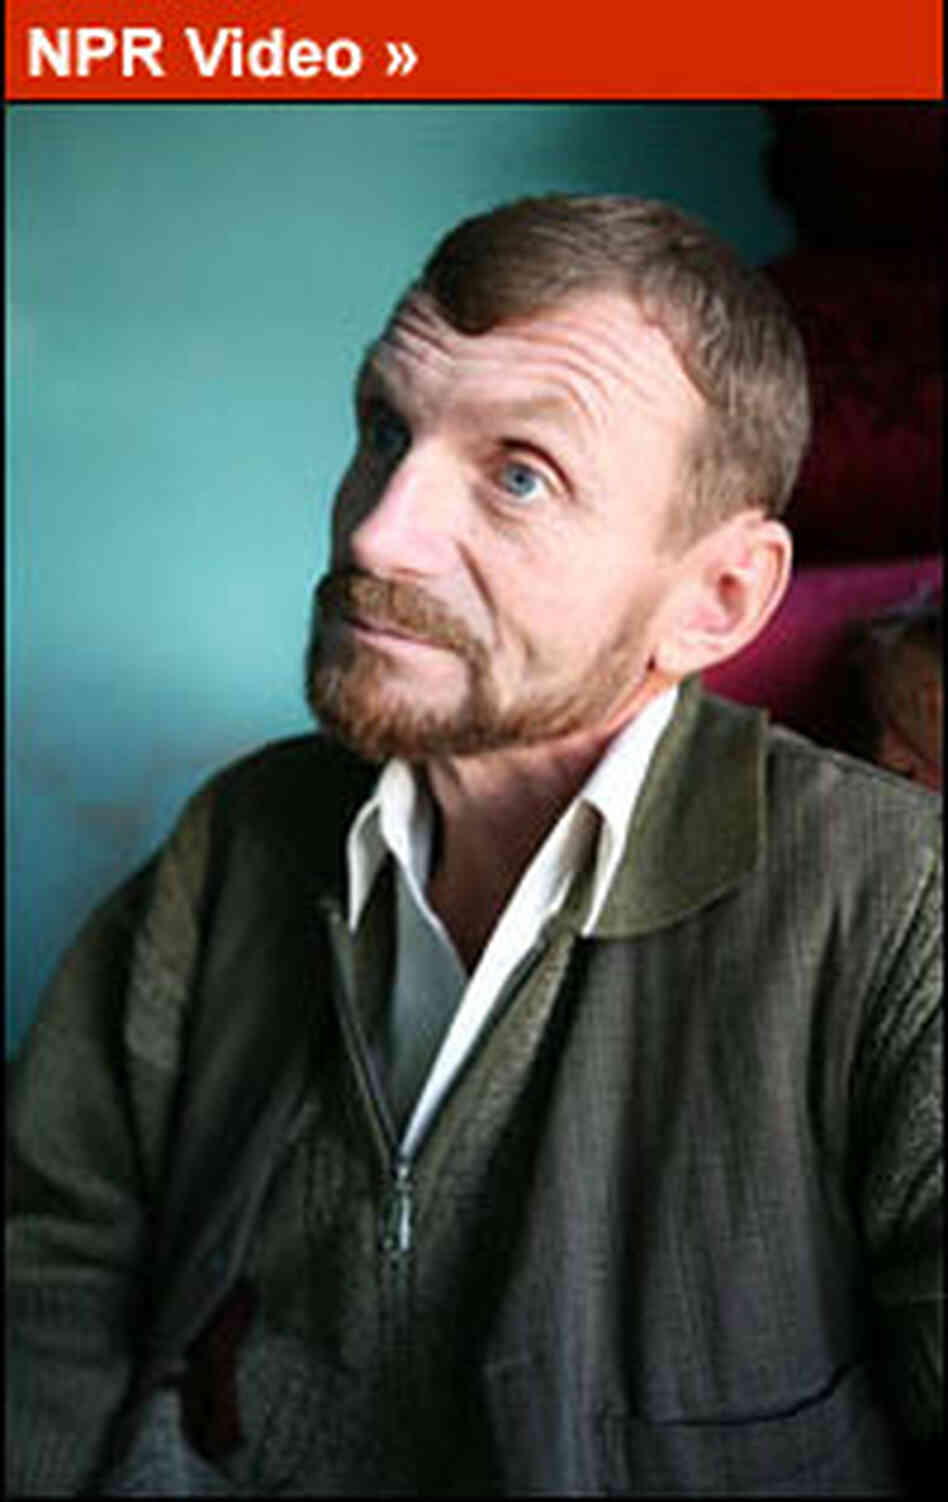 Gennady Tseuma is known in Afghanistan as Nik Mohammed.